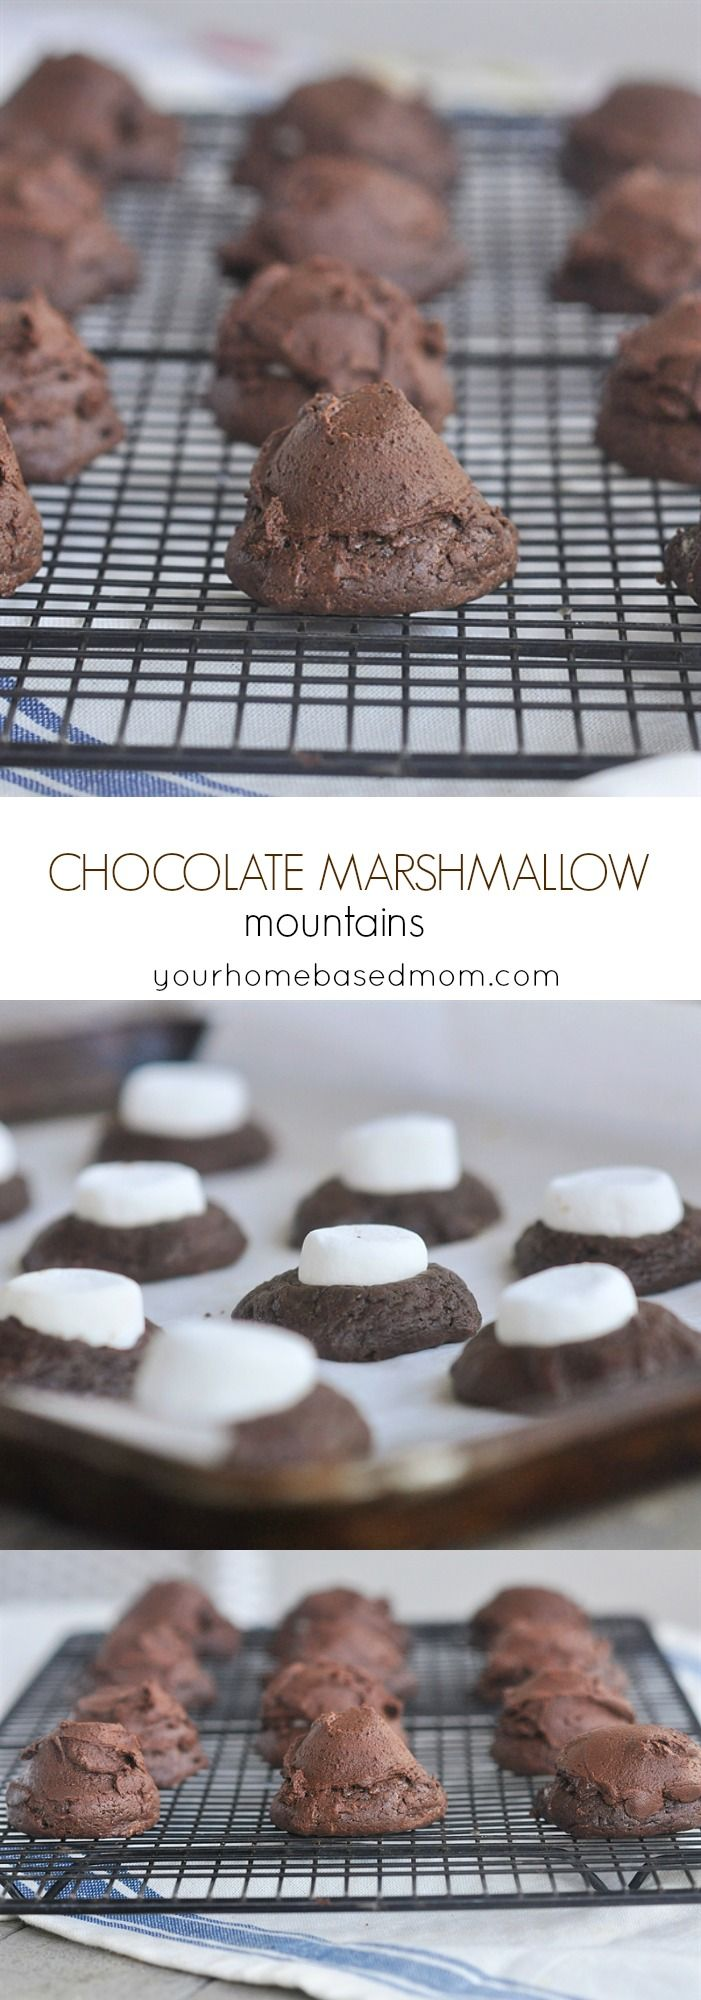 Chocolate Marshmallow Mountains Cookies Recipe - These are my kind of mountain, full of chocolate and marshmallow!